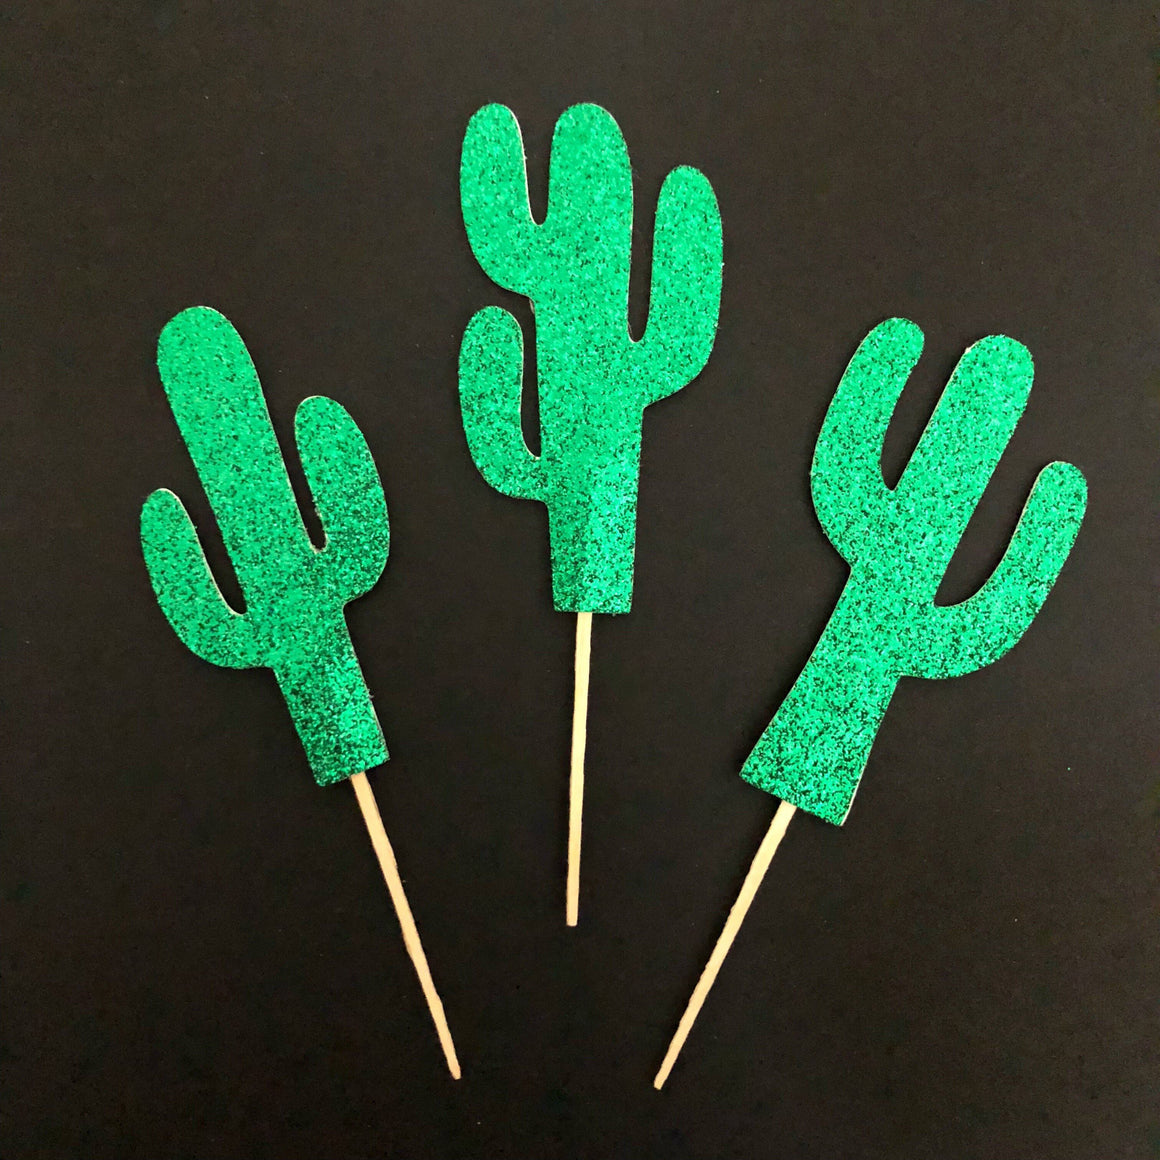 PARTY PICKS - CACTUS GREEN 2-SIDED, Picks + Toppers, BON + CO - Bon + Co. Party Studio